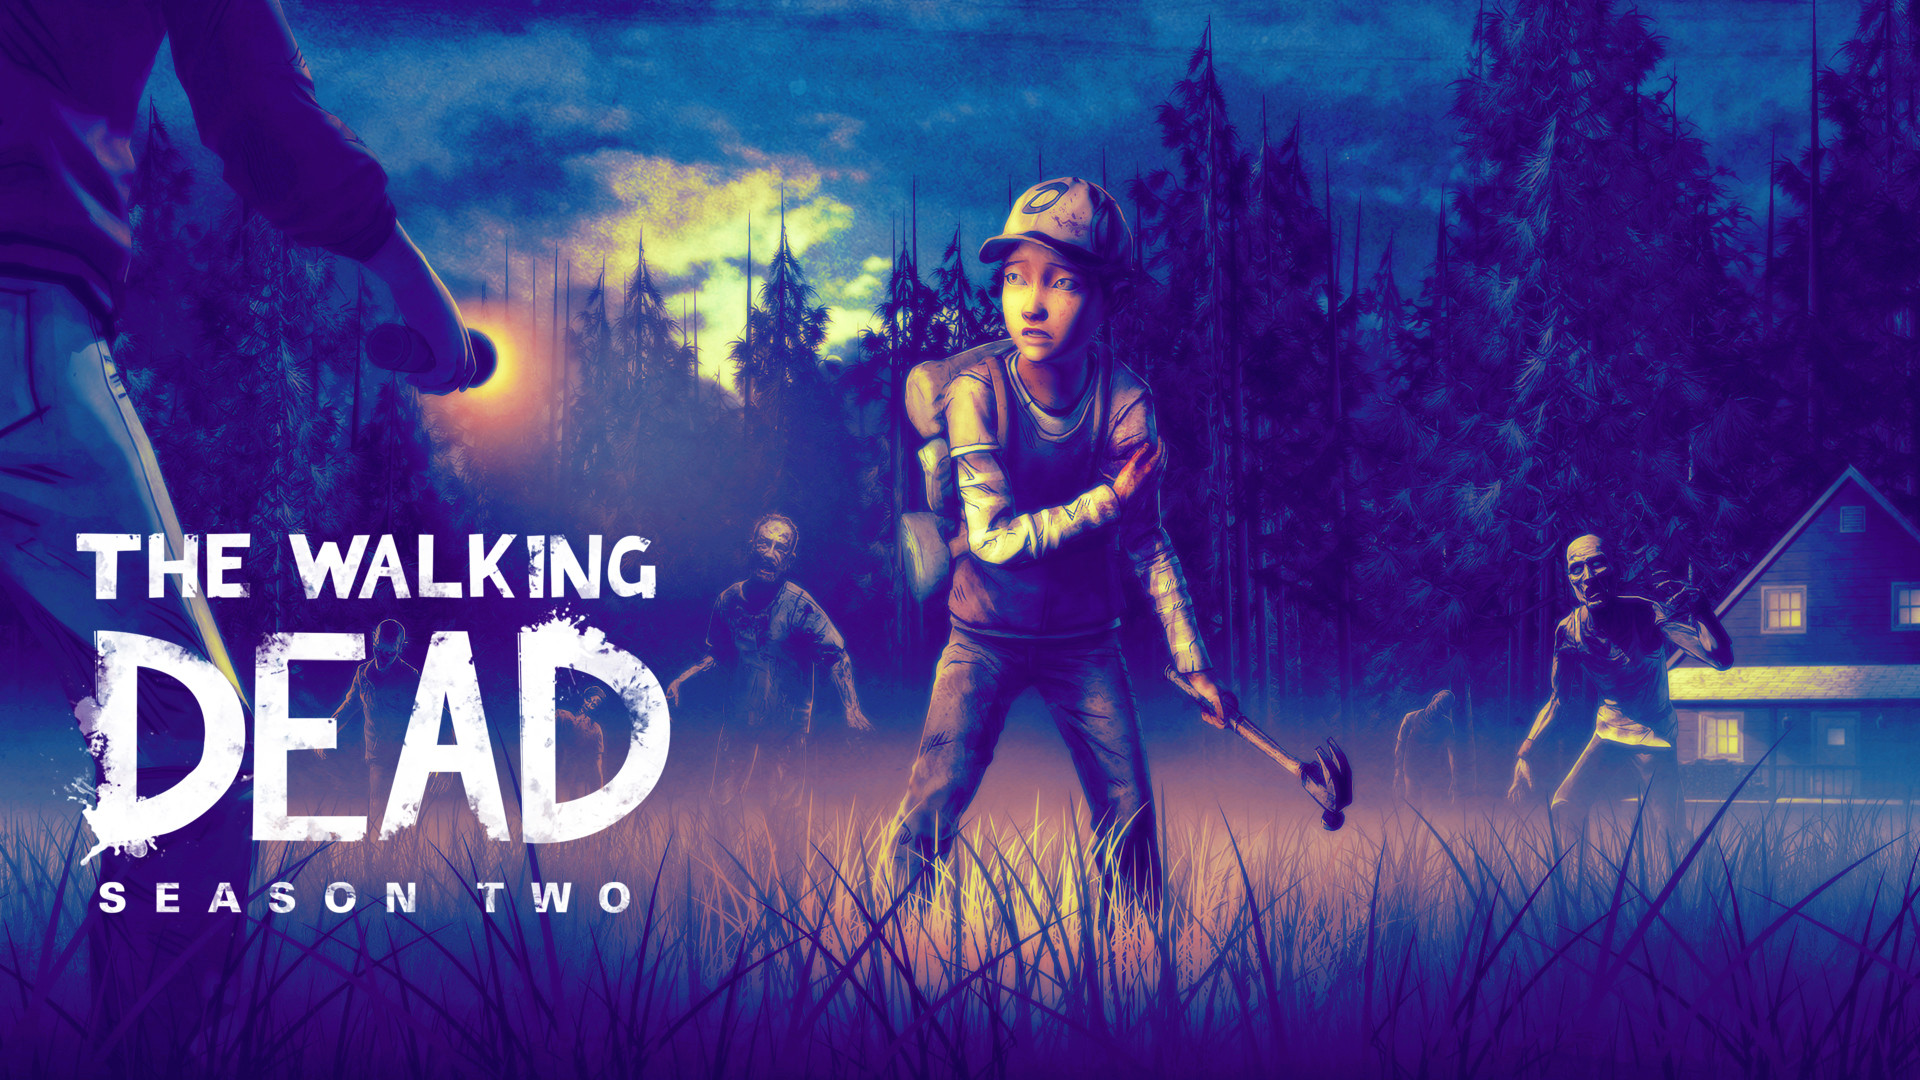 … The Walking Dead Game S2 Wallpaper – Clementine by pikkupenguin